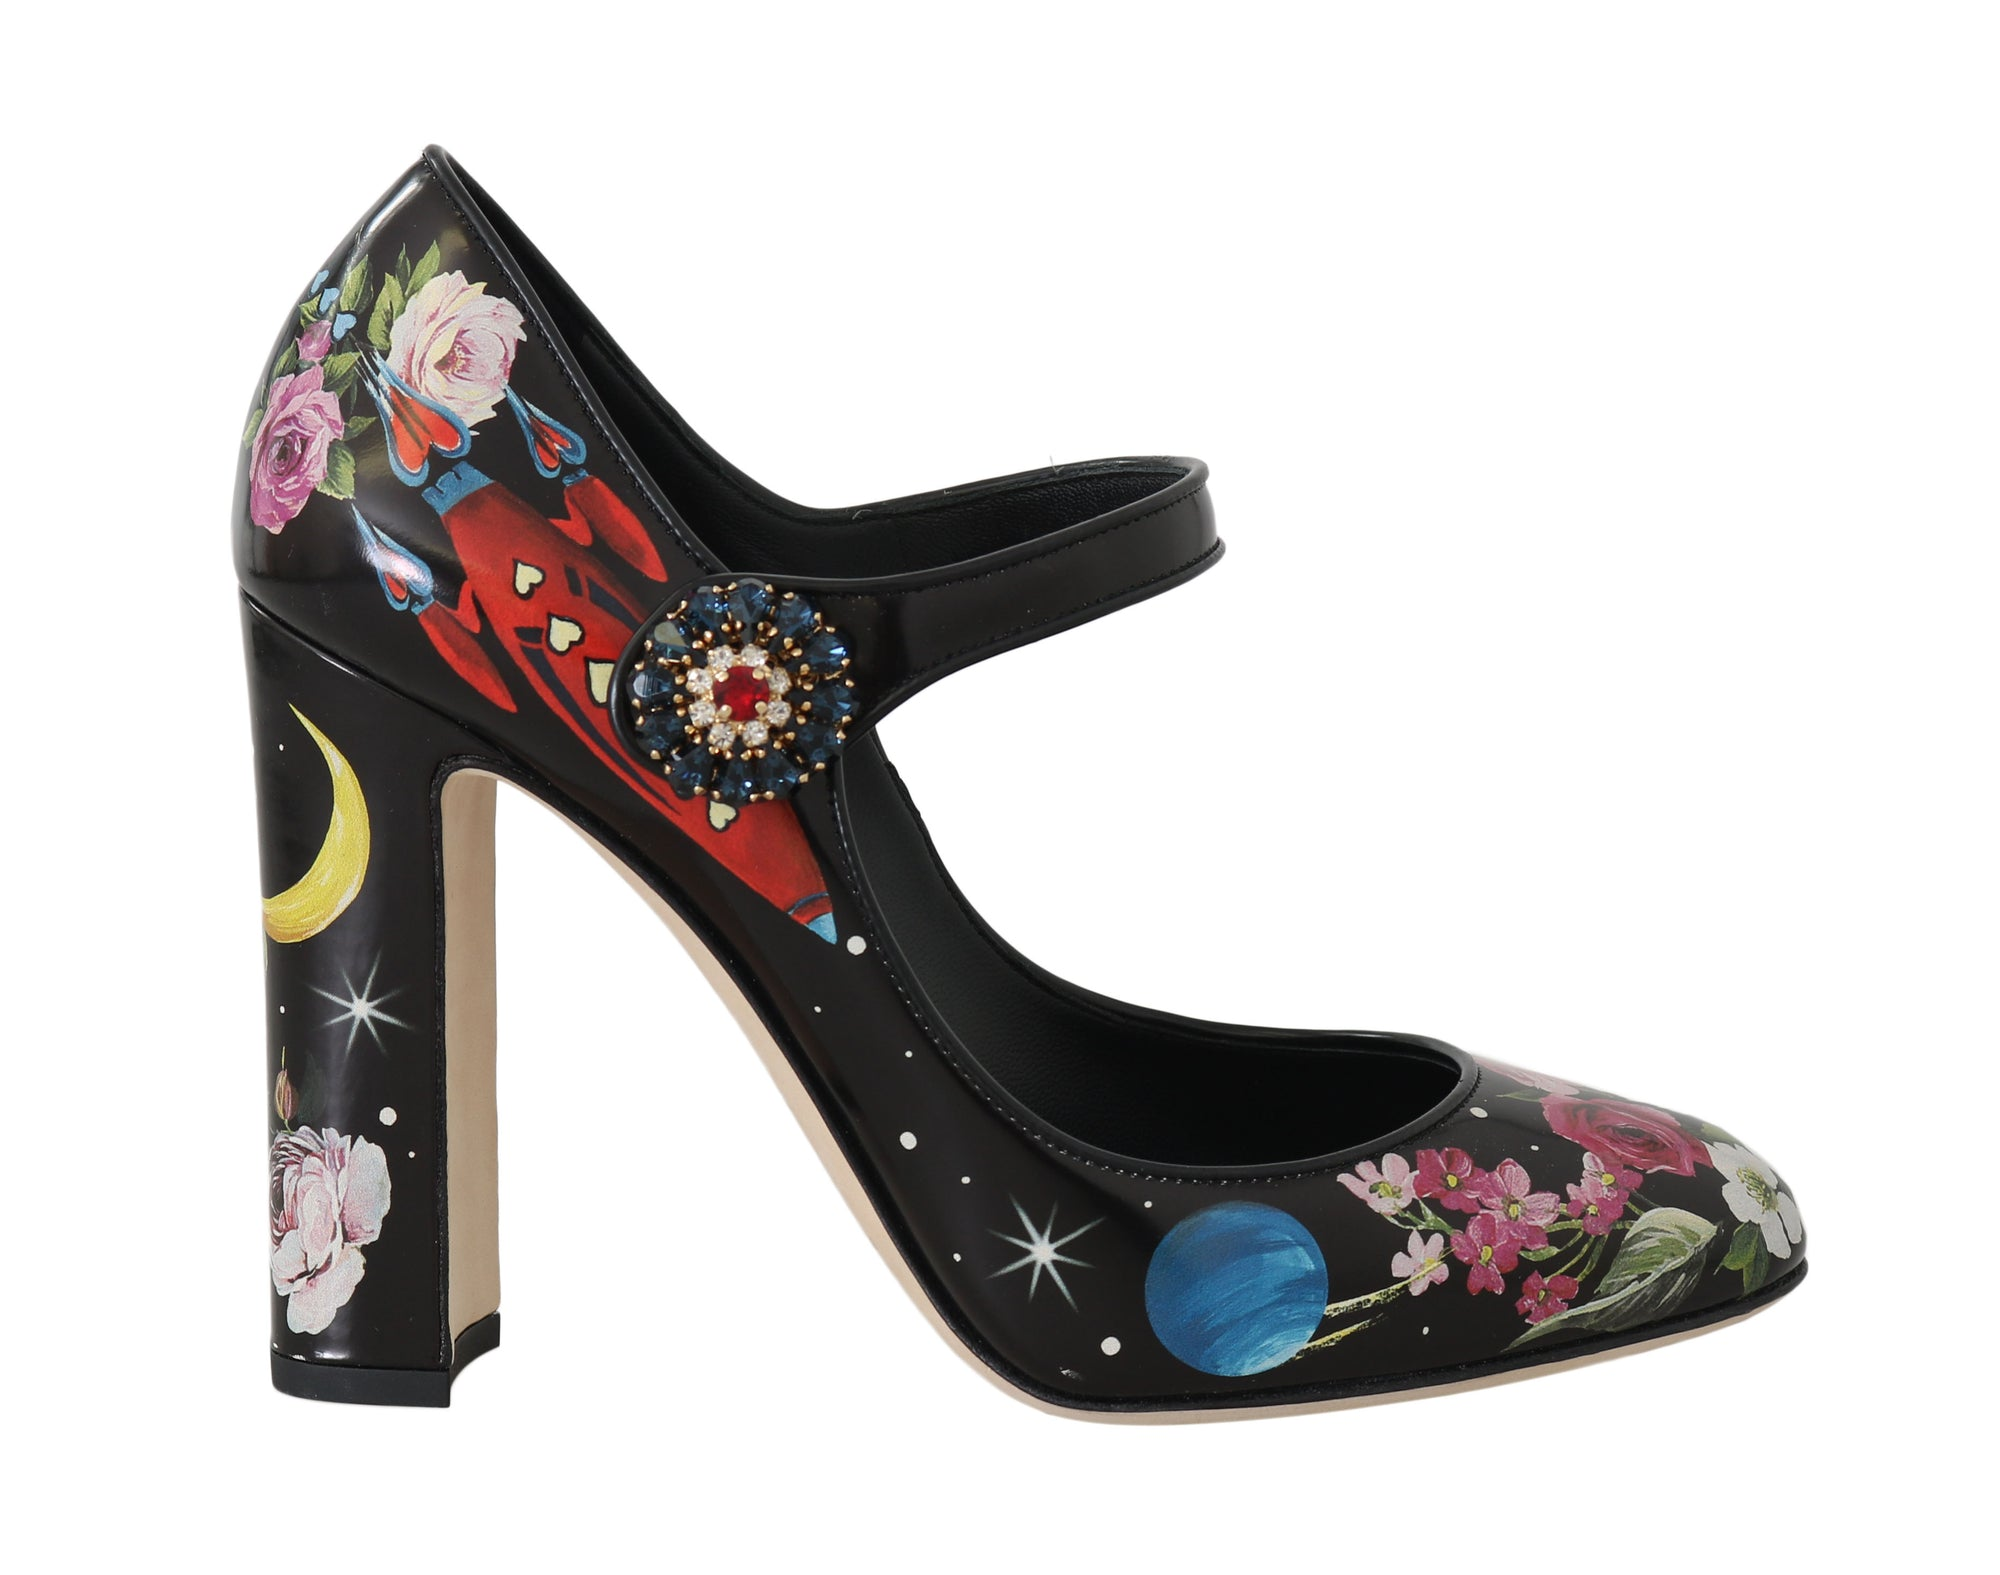 Astronaut Black Leather Crystal Pumps